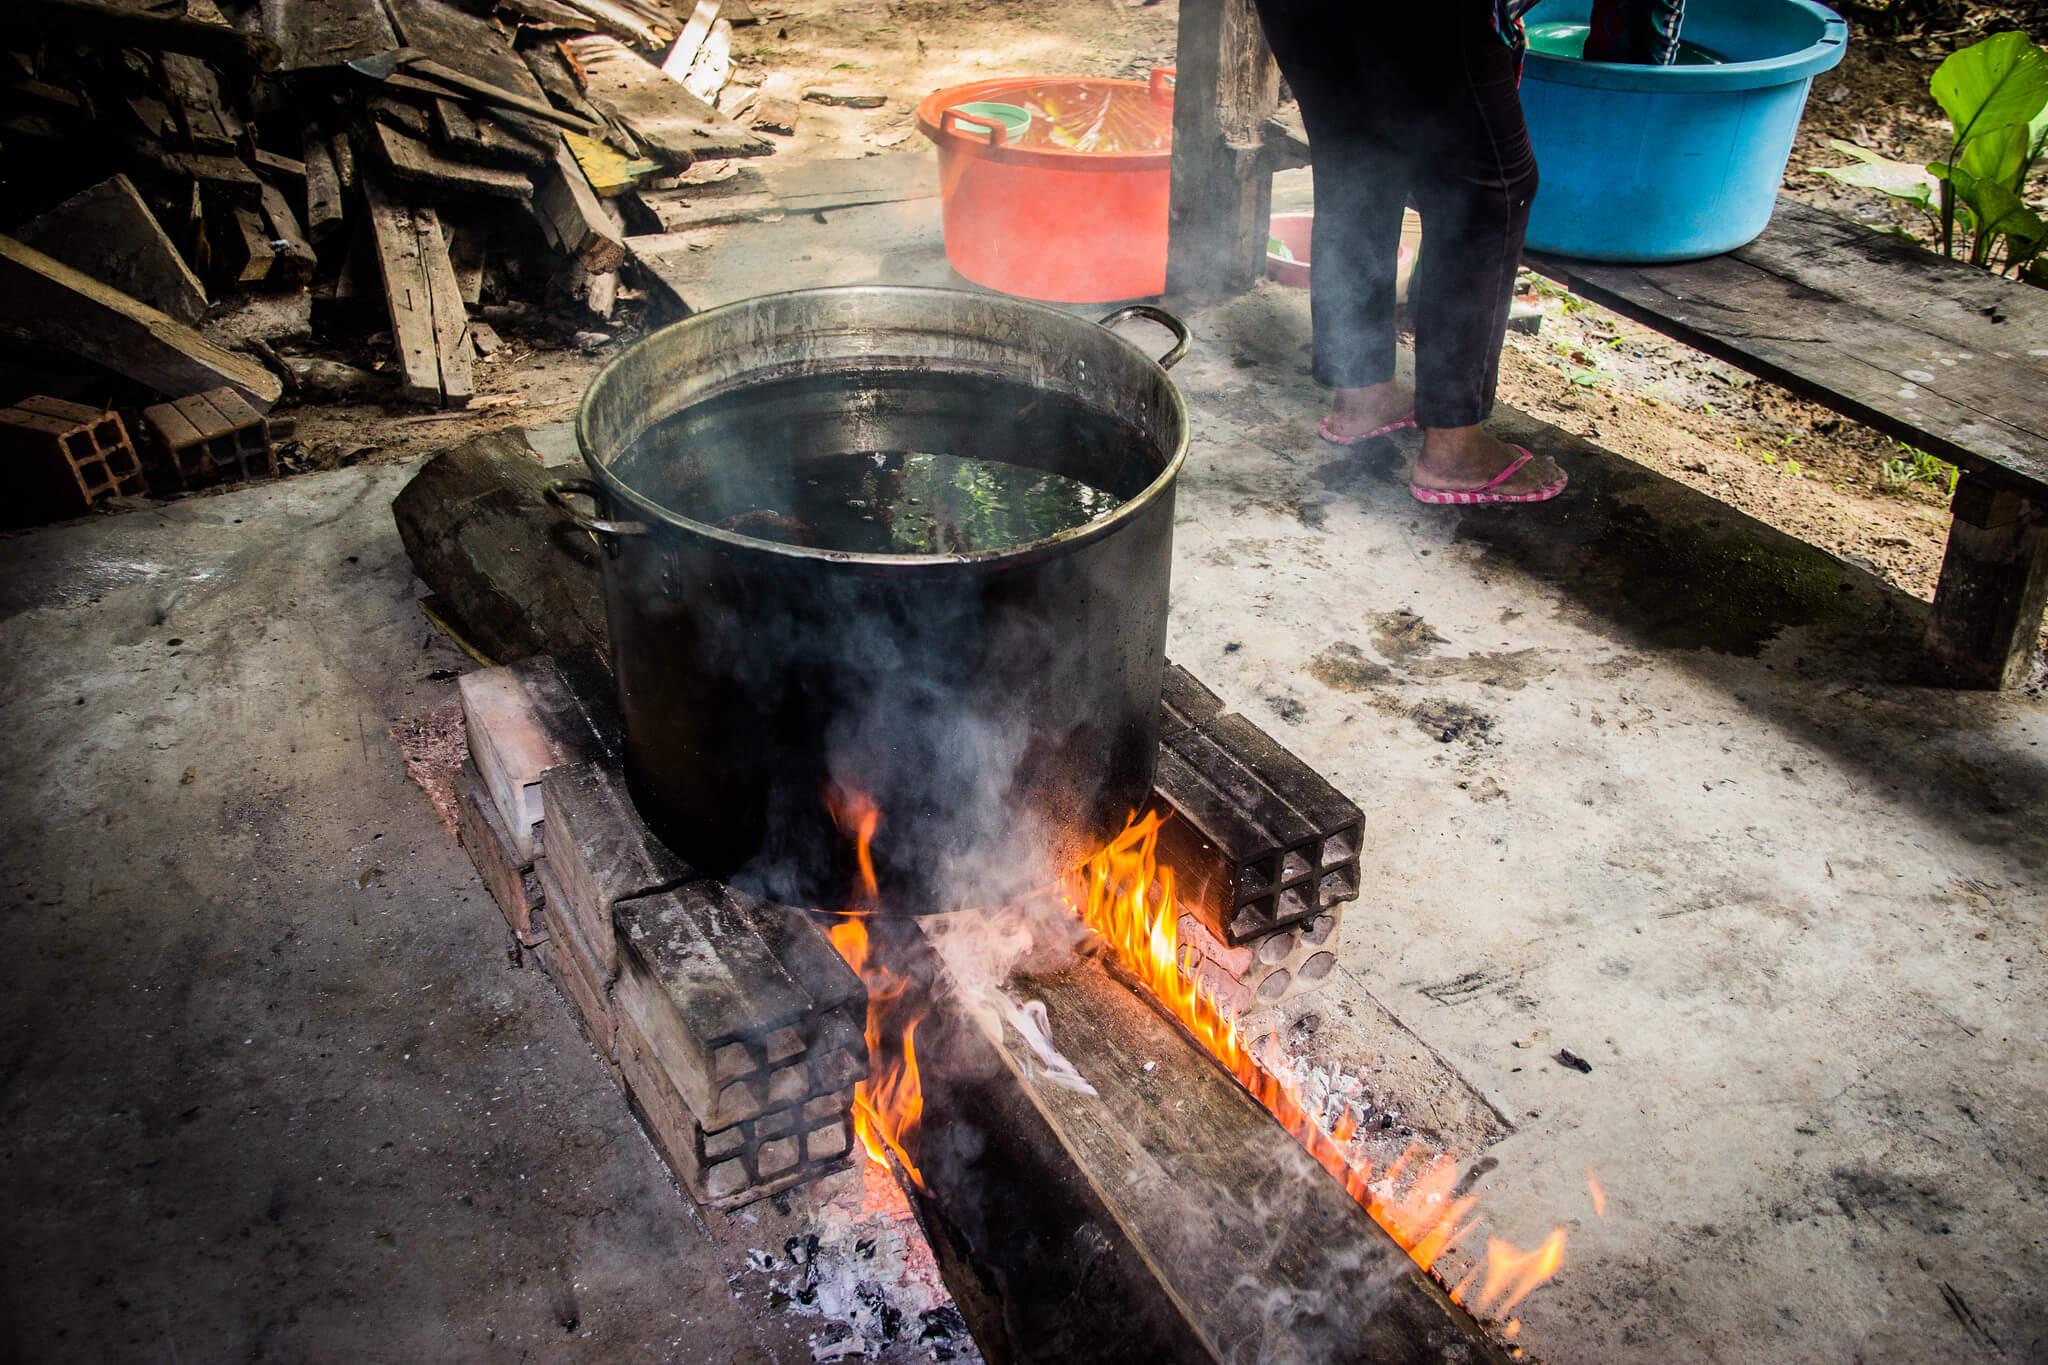 Drug Tourism in South America - Ayahuasca being brewed in a pot over a fire